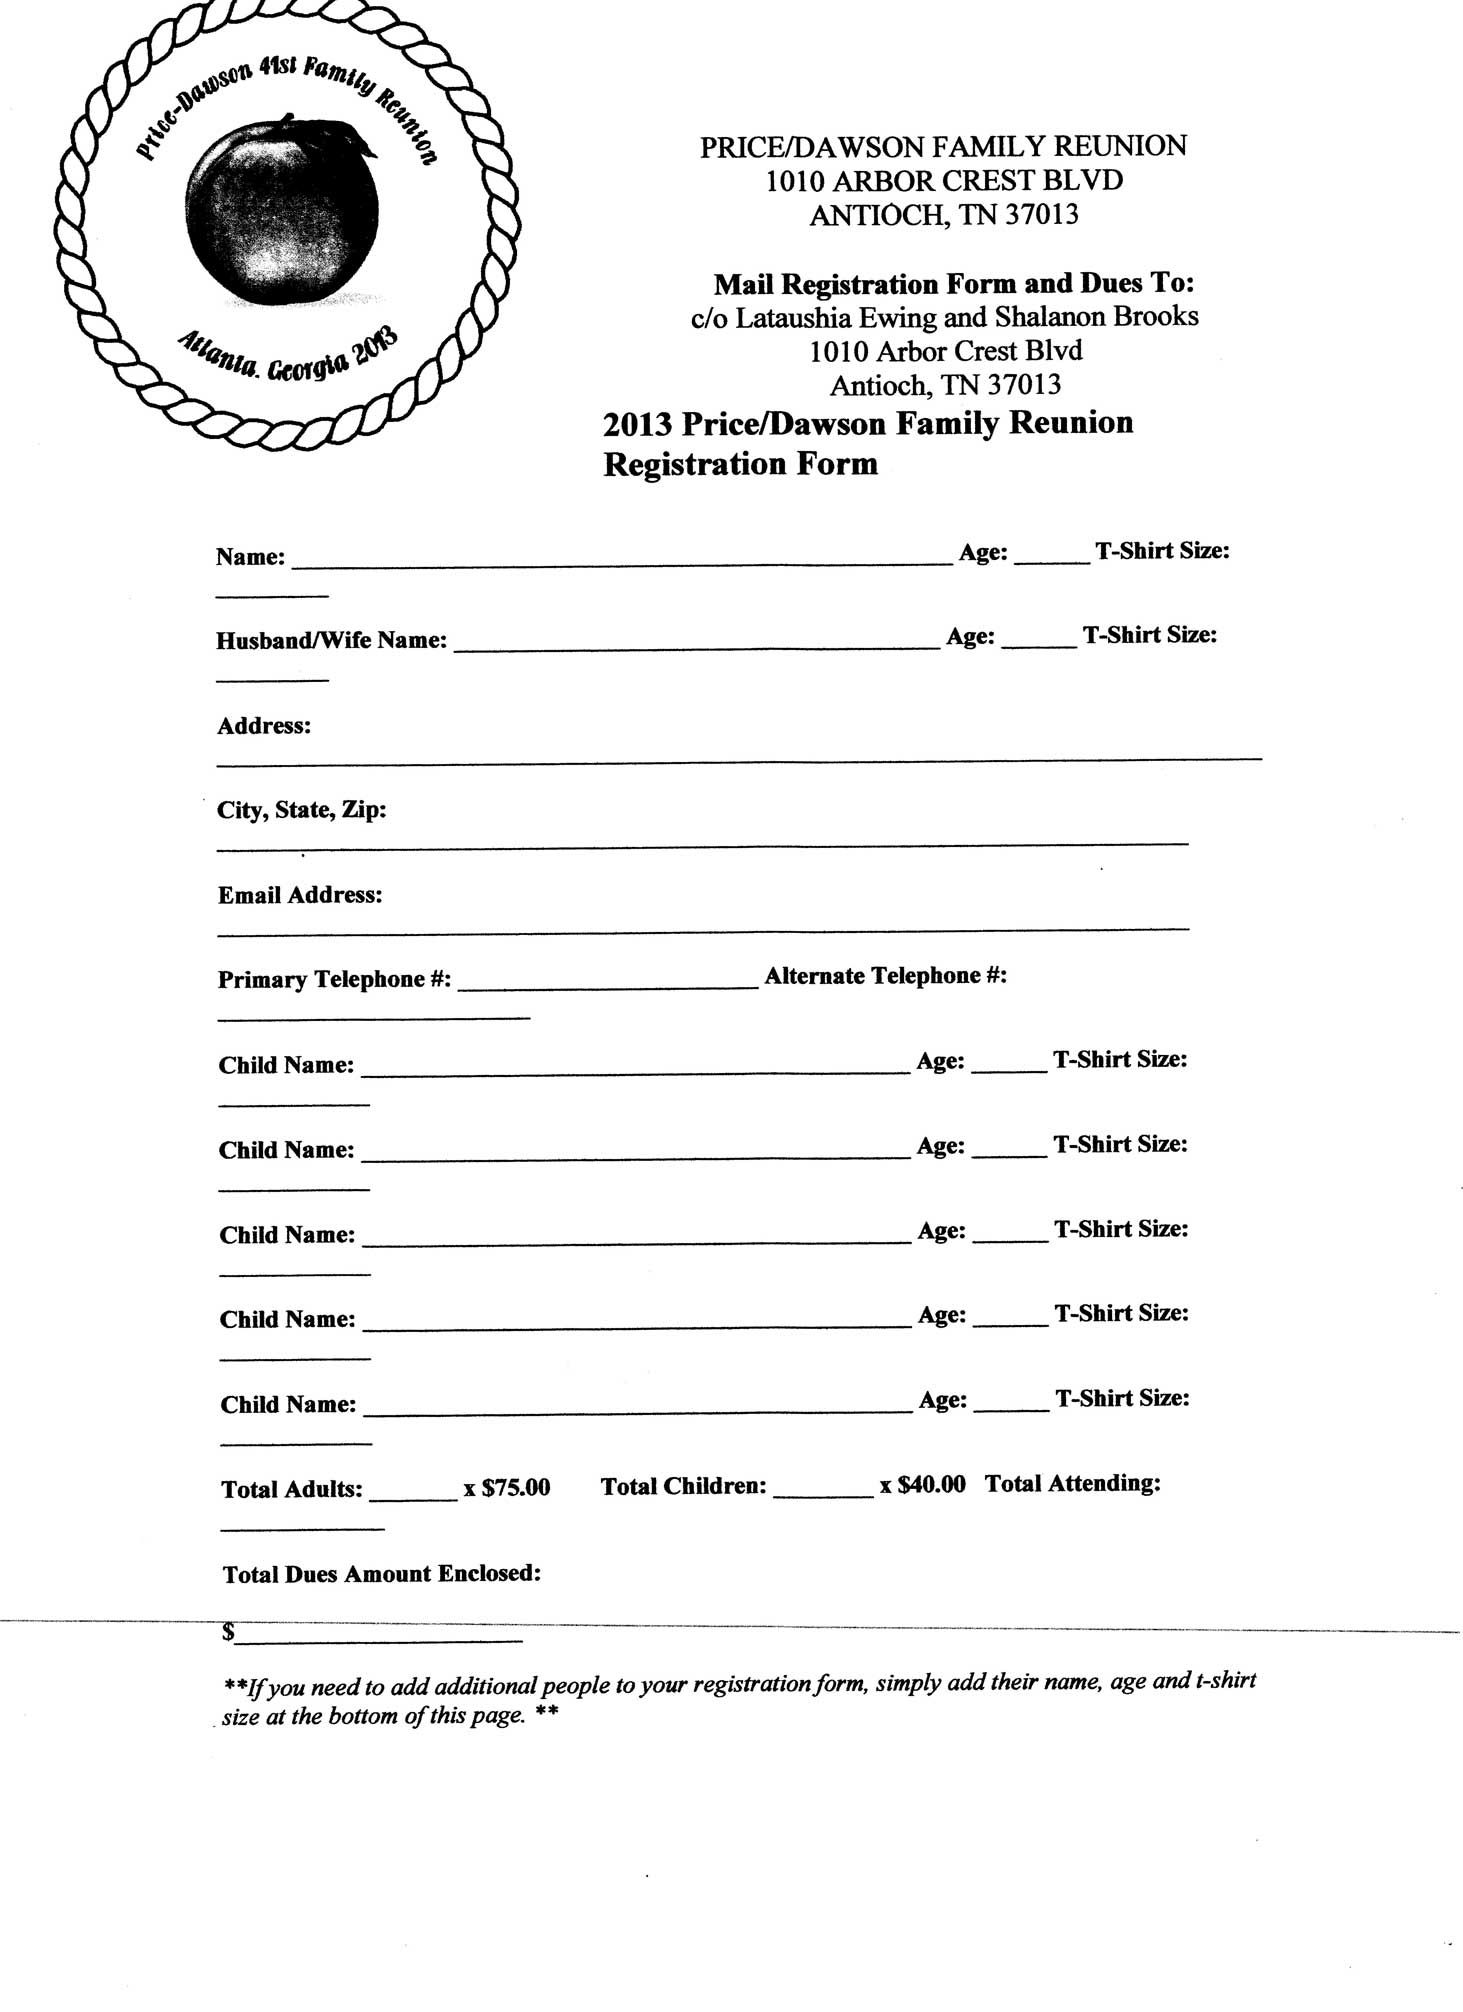 Family reunion registration form template family reunions family reunion registration form template family reunions pinterest family reunions registration form and template falaconquin